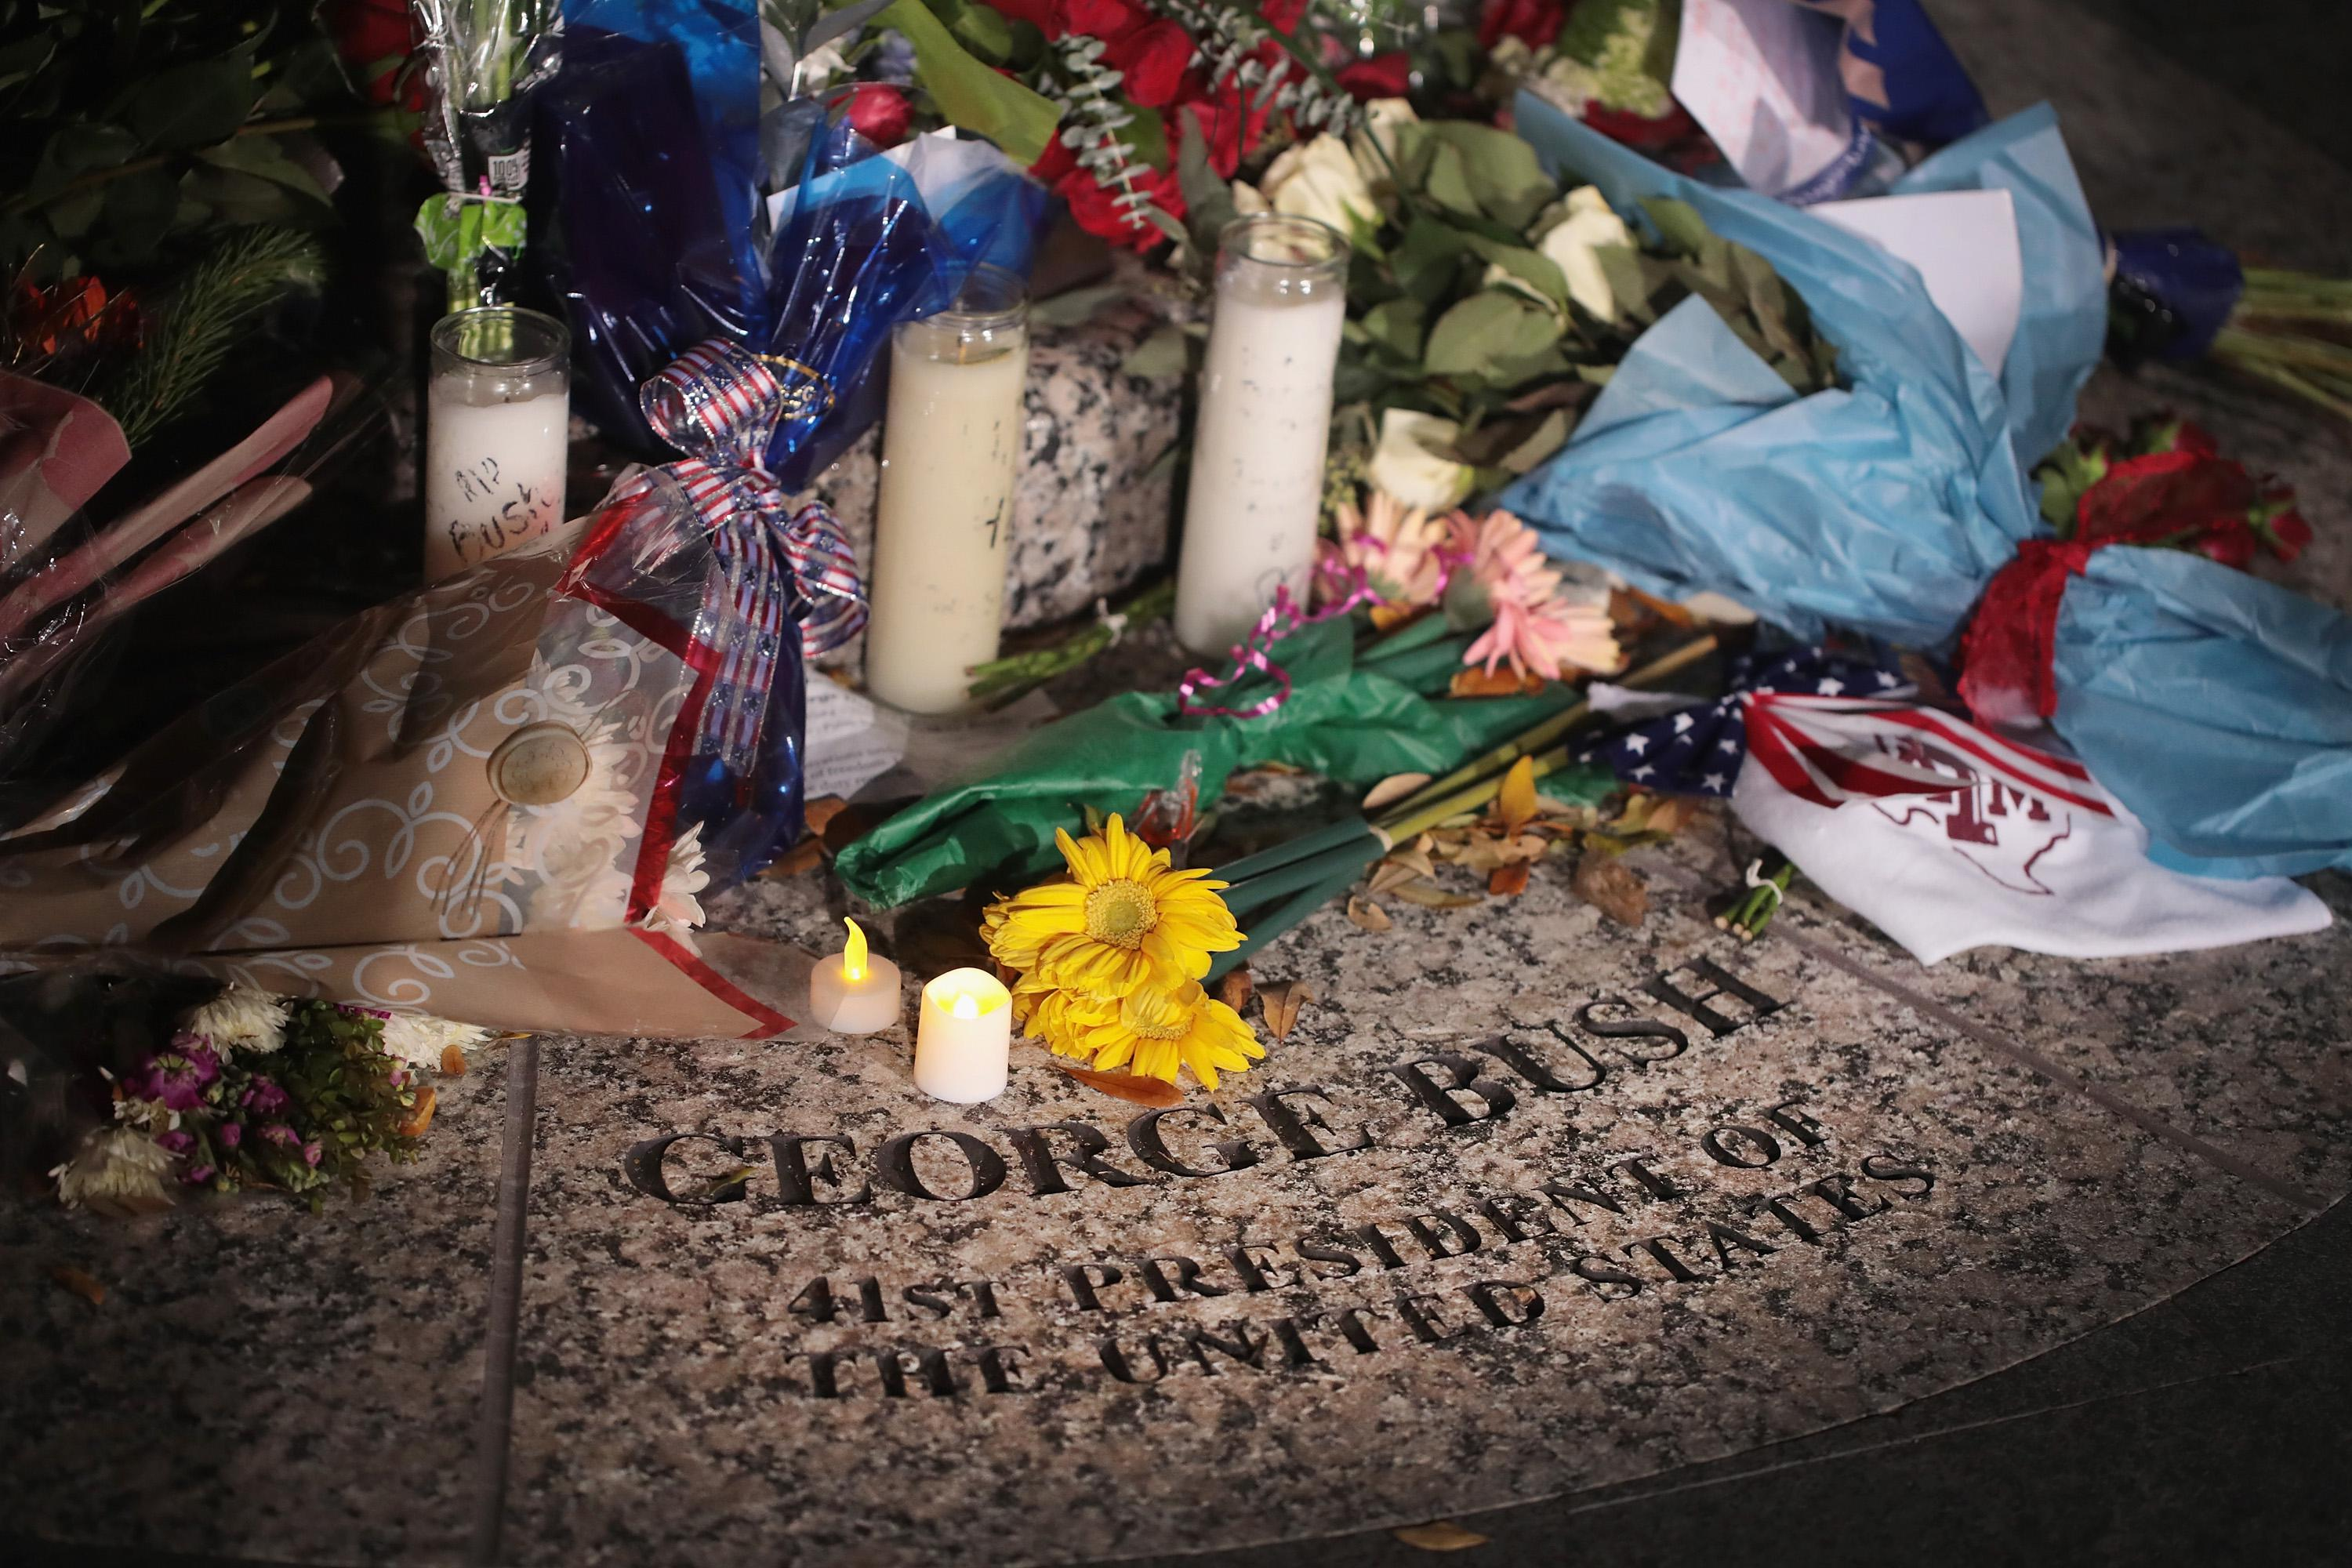 Flowers are left at the base of a statue of President George H.W. Bush on the campus of Texas A&M University outside the George H.W. Bush Presidential Library Center on December 1, 2018 in College Station, Texas.